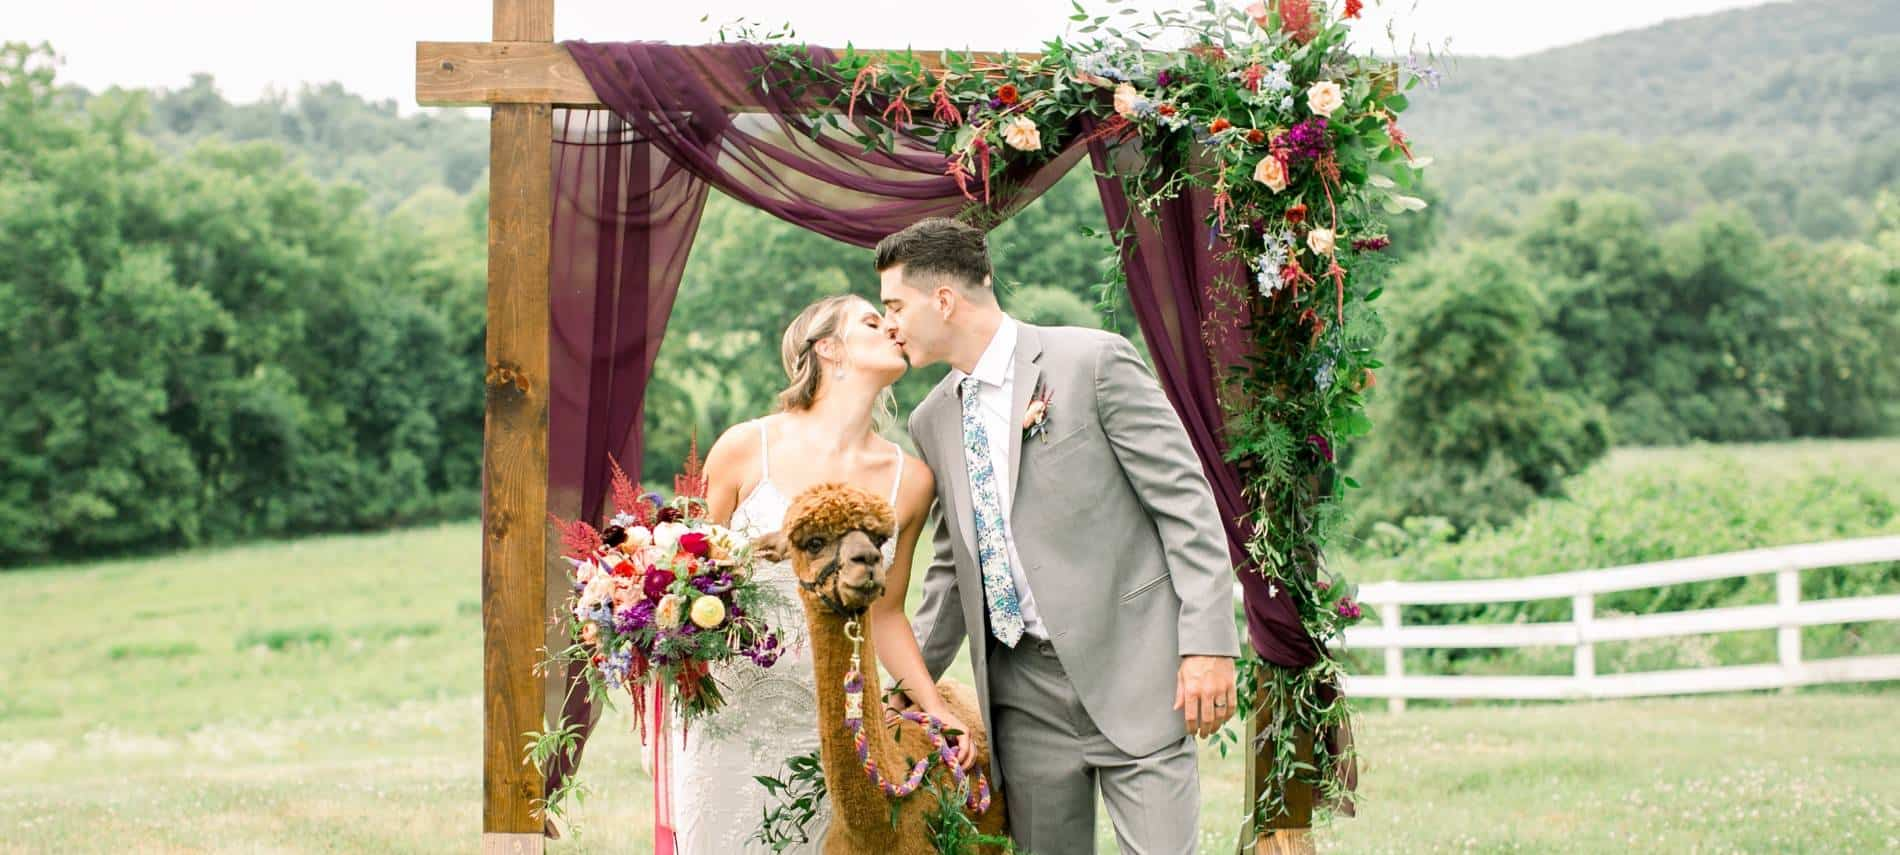 Bride with white wedding dress and groom with gray suit standing near a brown alpaca under a wooden alter decorated with flowers on a hill with green trees in the background